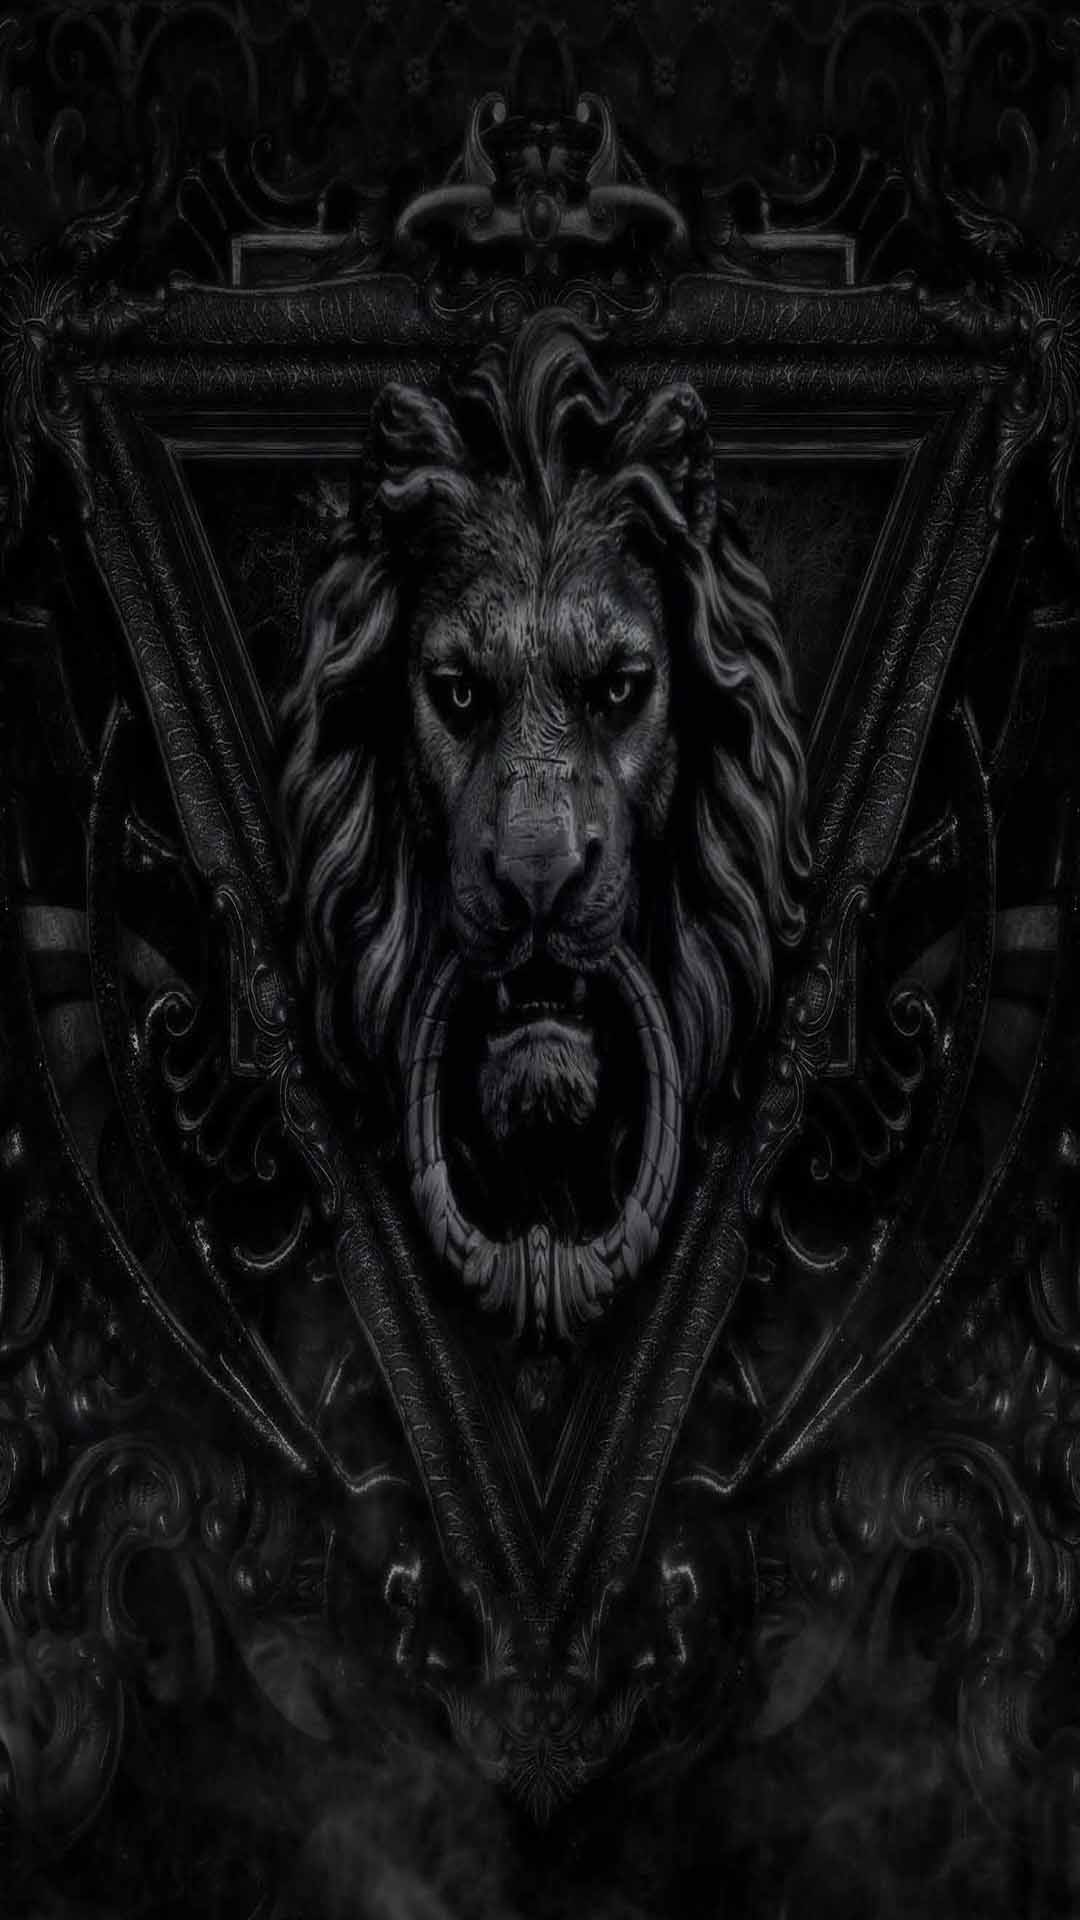 dark gothic lion wallpaper - photo #3